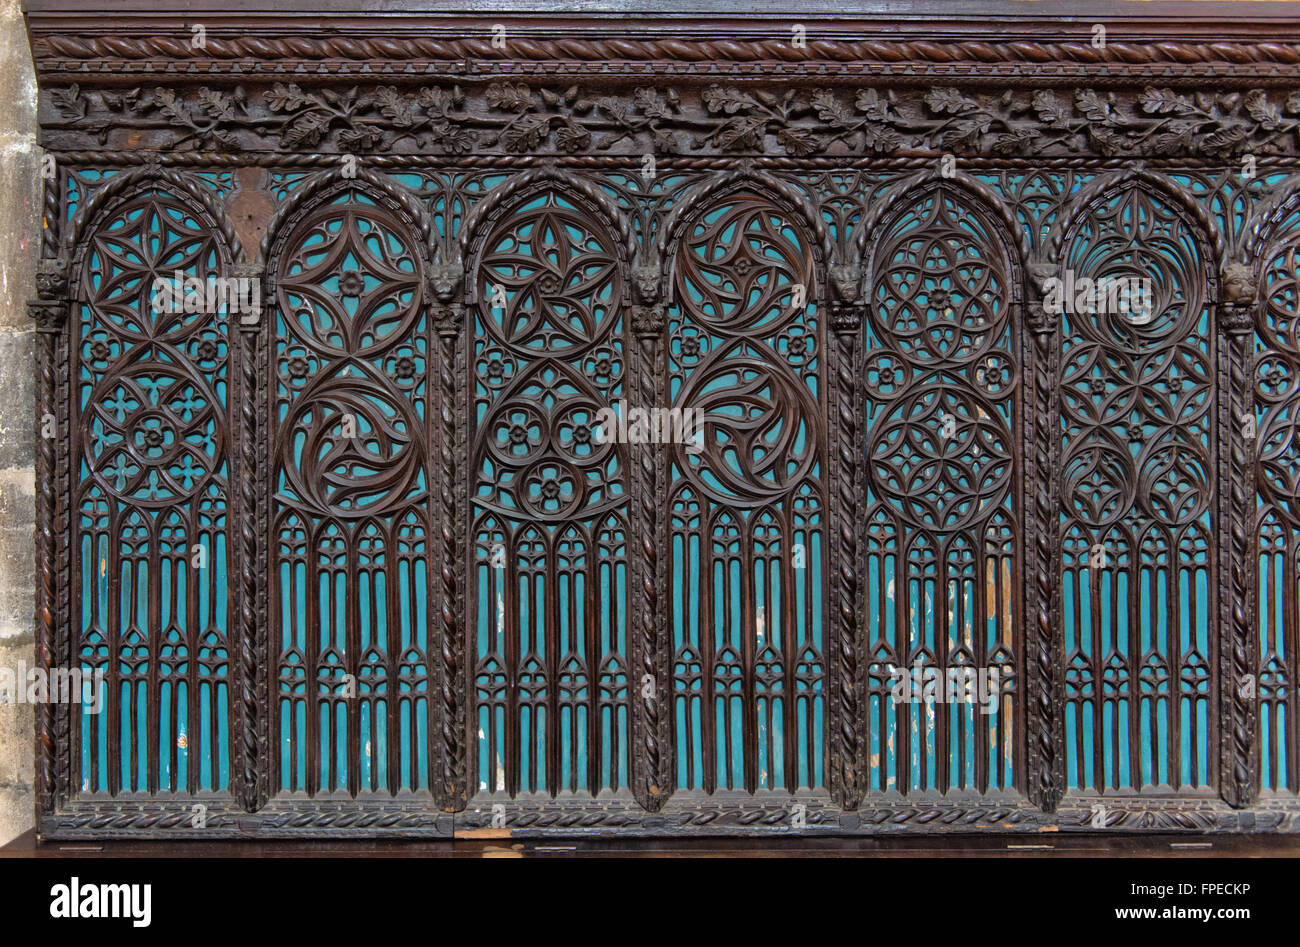 Architectural Detail Of Blue Windows With Intricate Wood